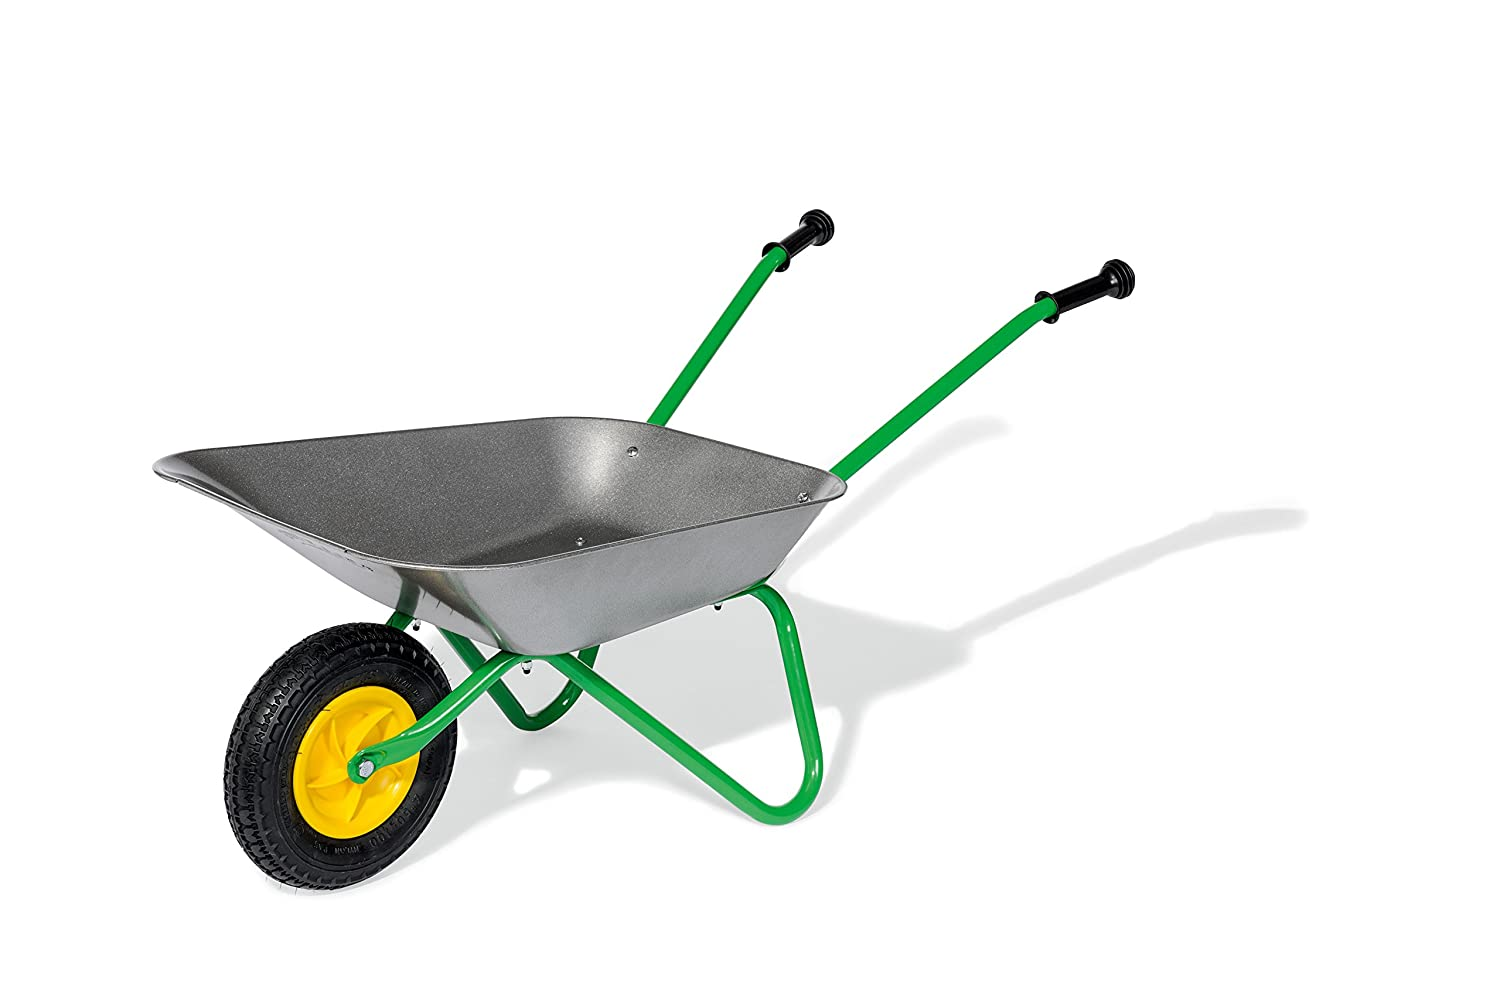 rolly toys 271757 Metal Children's Wheelbarrow Air Tyre | Children from 2.5 Years | Colour: Grey/Green/TÜV/GS-tested